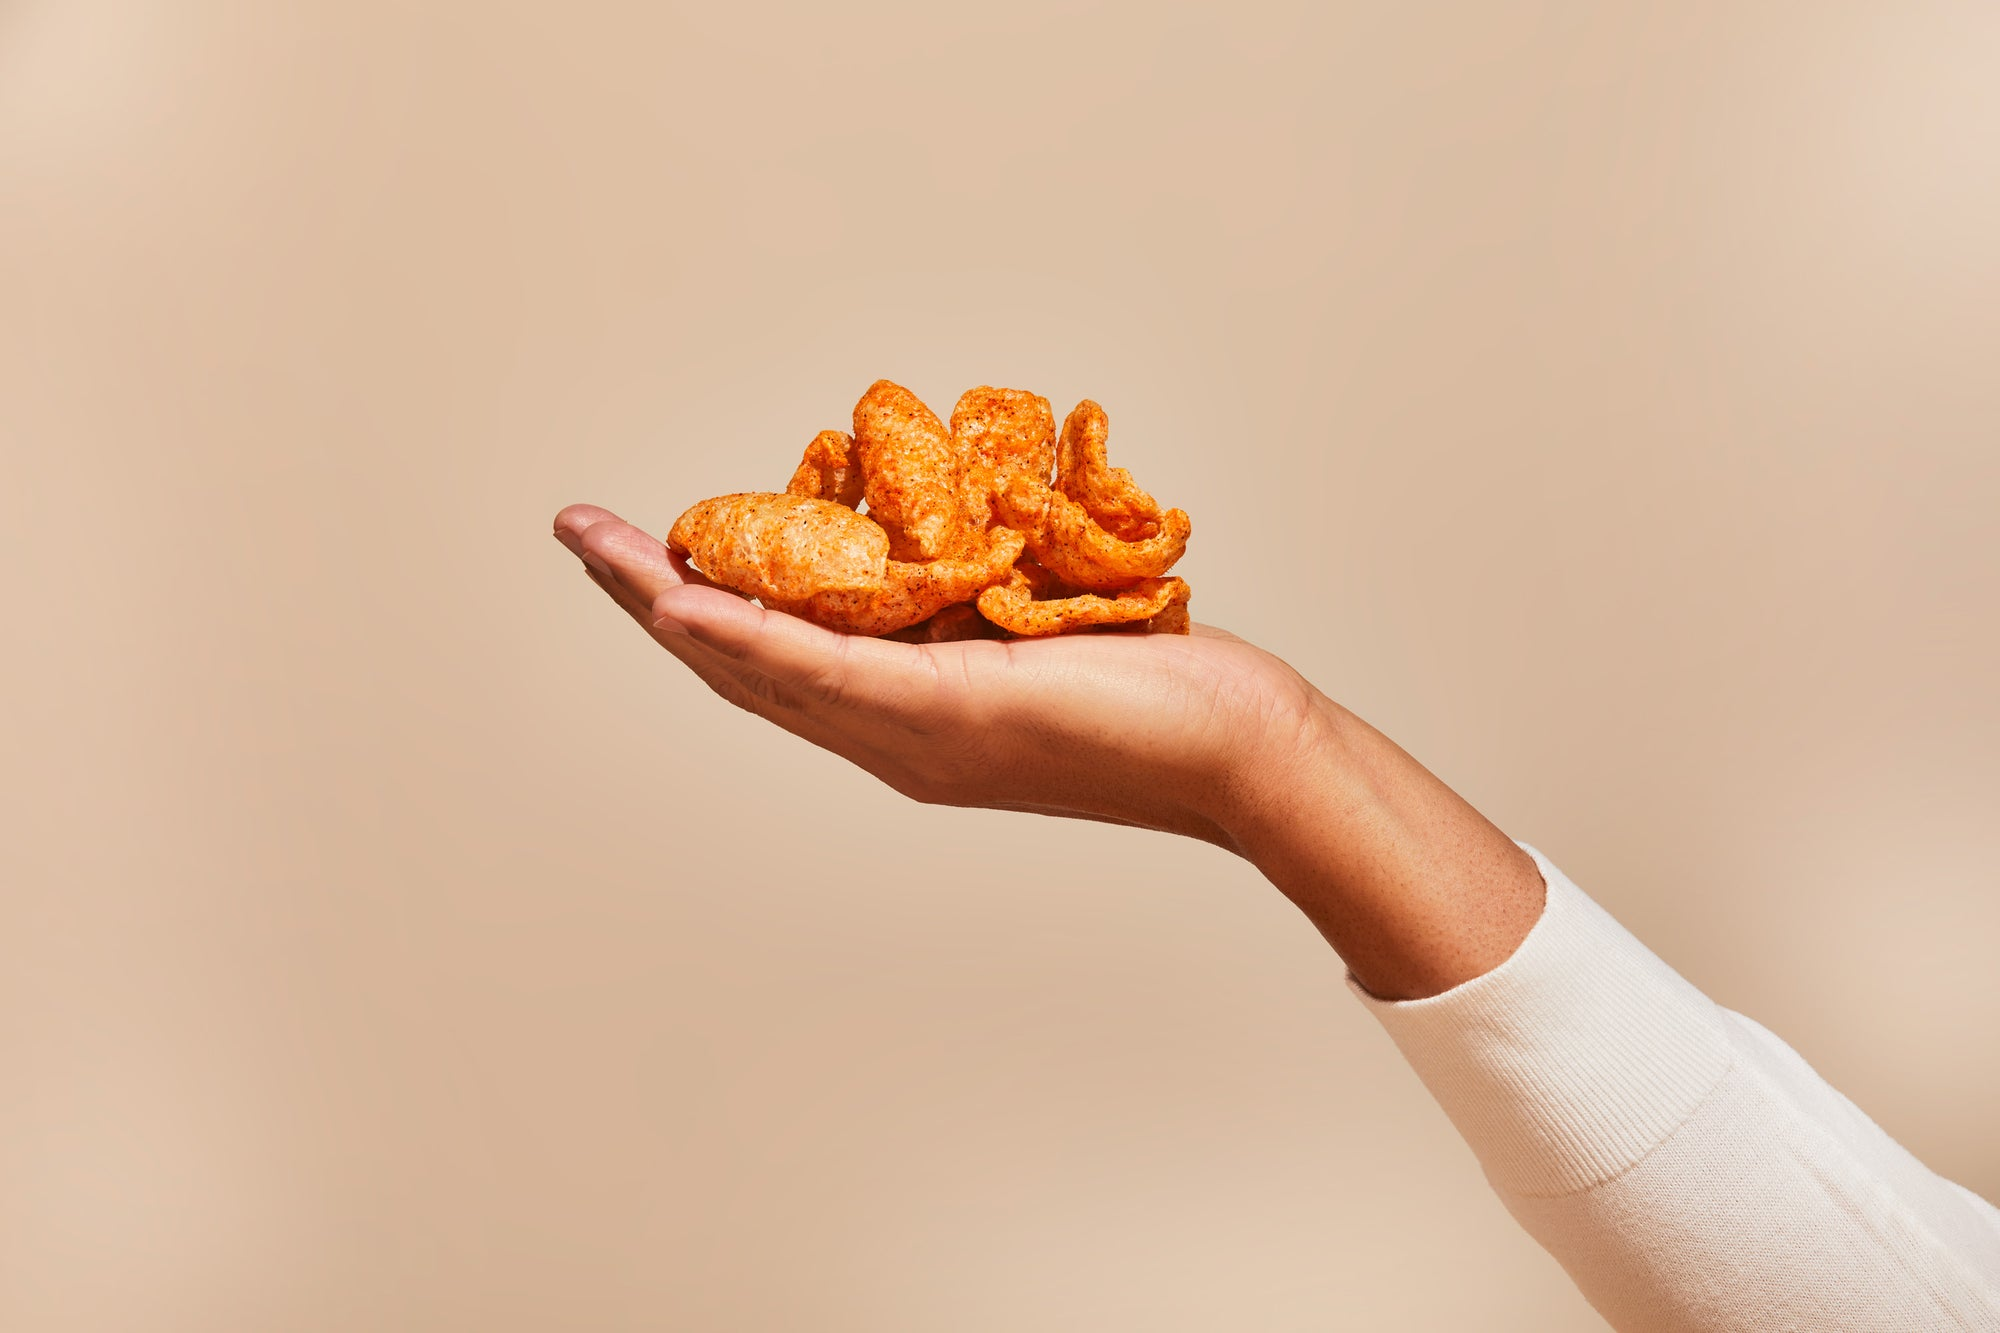 A delicious, crunchy stack of fried chicharrones in the palm of your hand